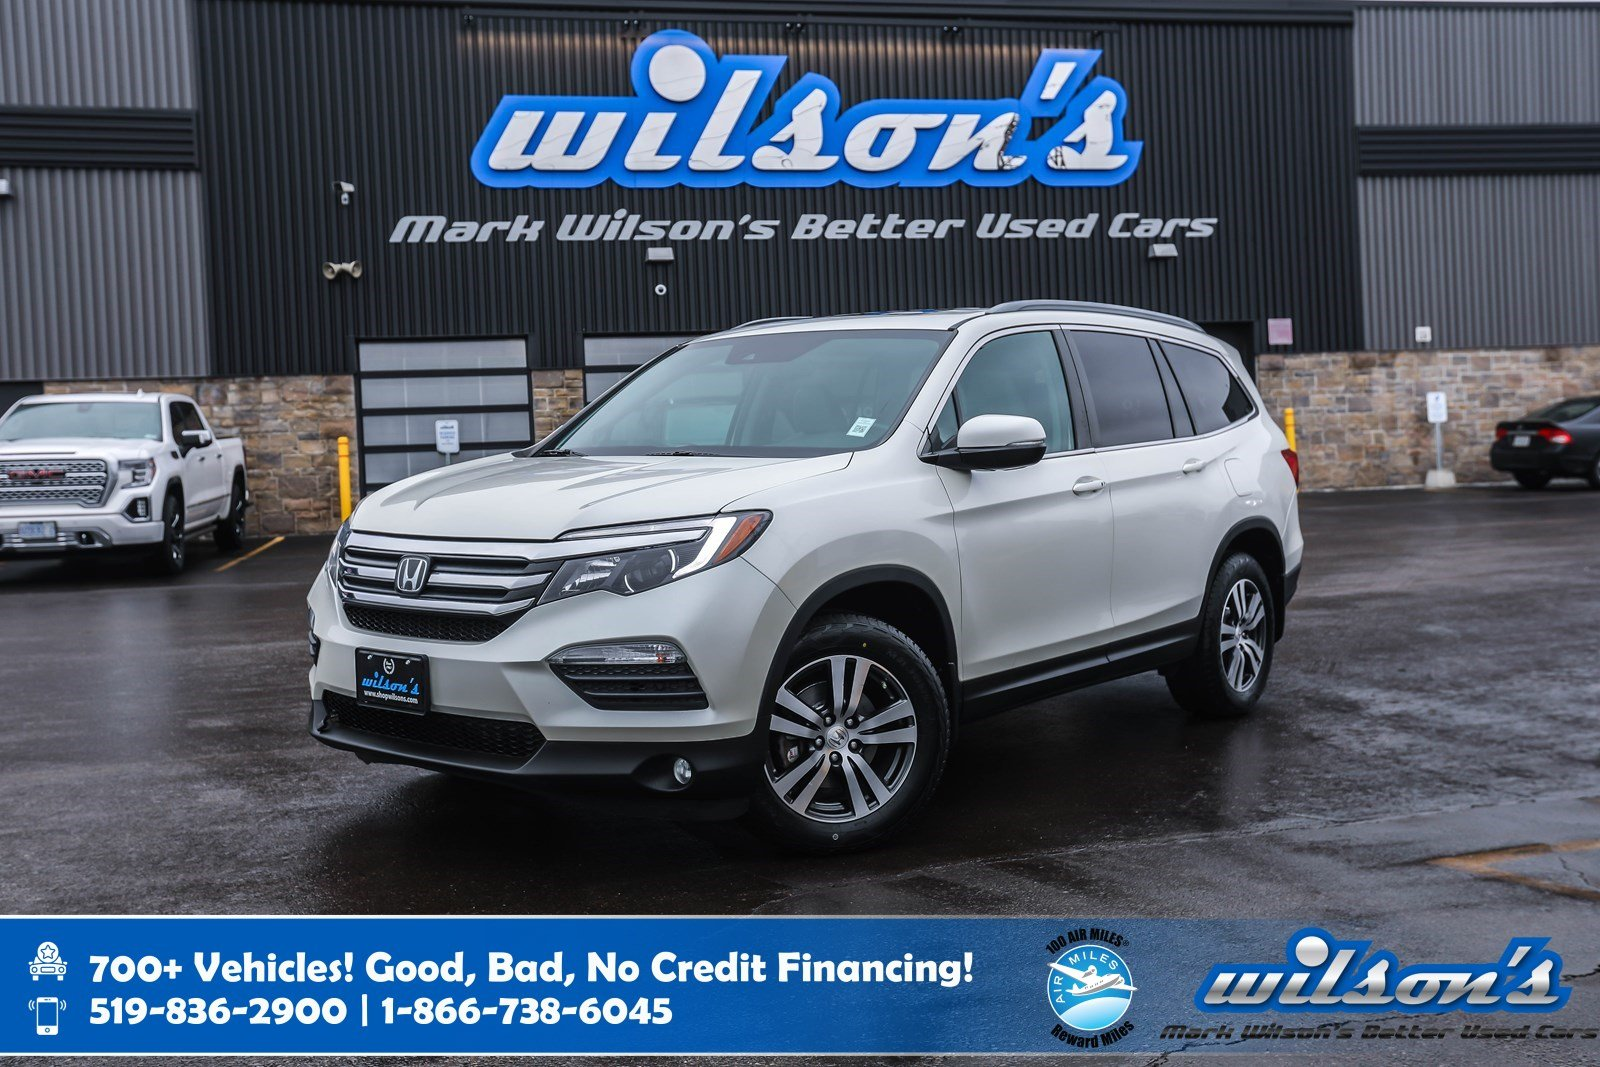 Certified Pre-Owned 2016 Honda Pilot EX-L 4x4 Leather, Navigation, Sunroof, New Tires, Heated Steering, Remote Start, Rear Camera & more!